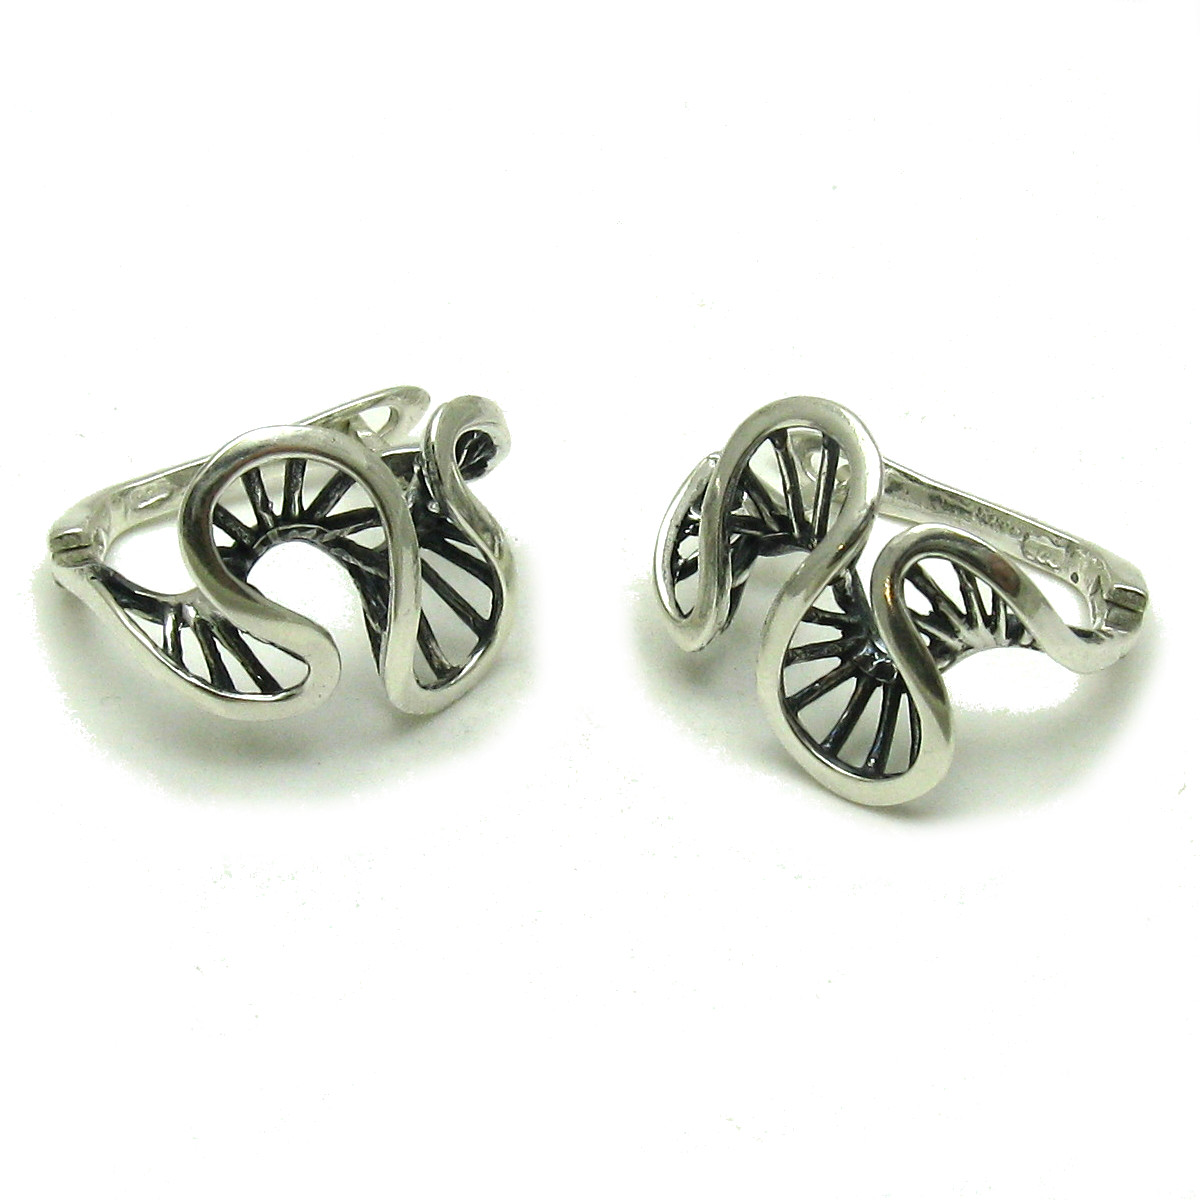 Silver earrings - E000591